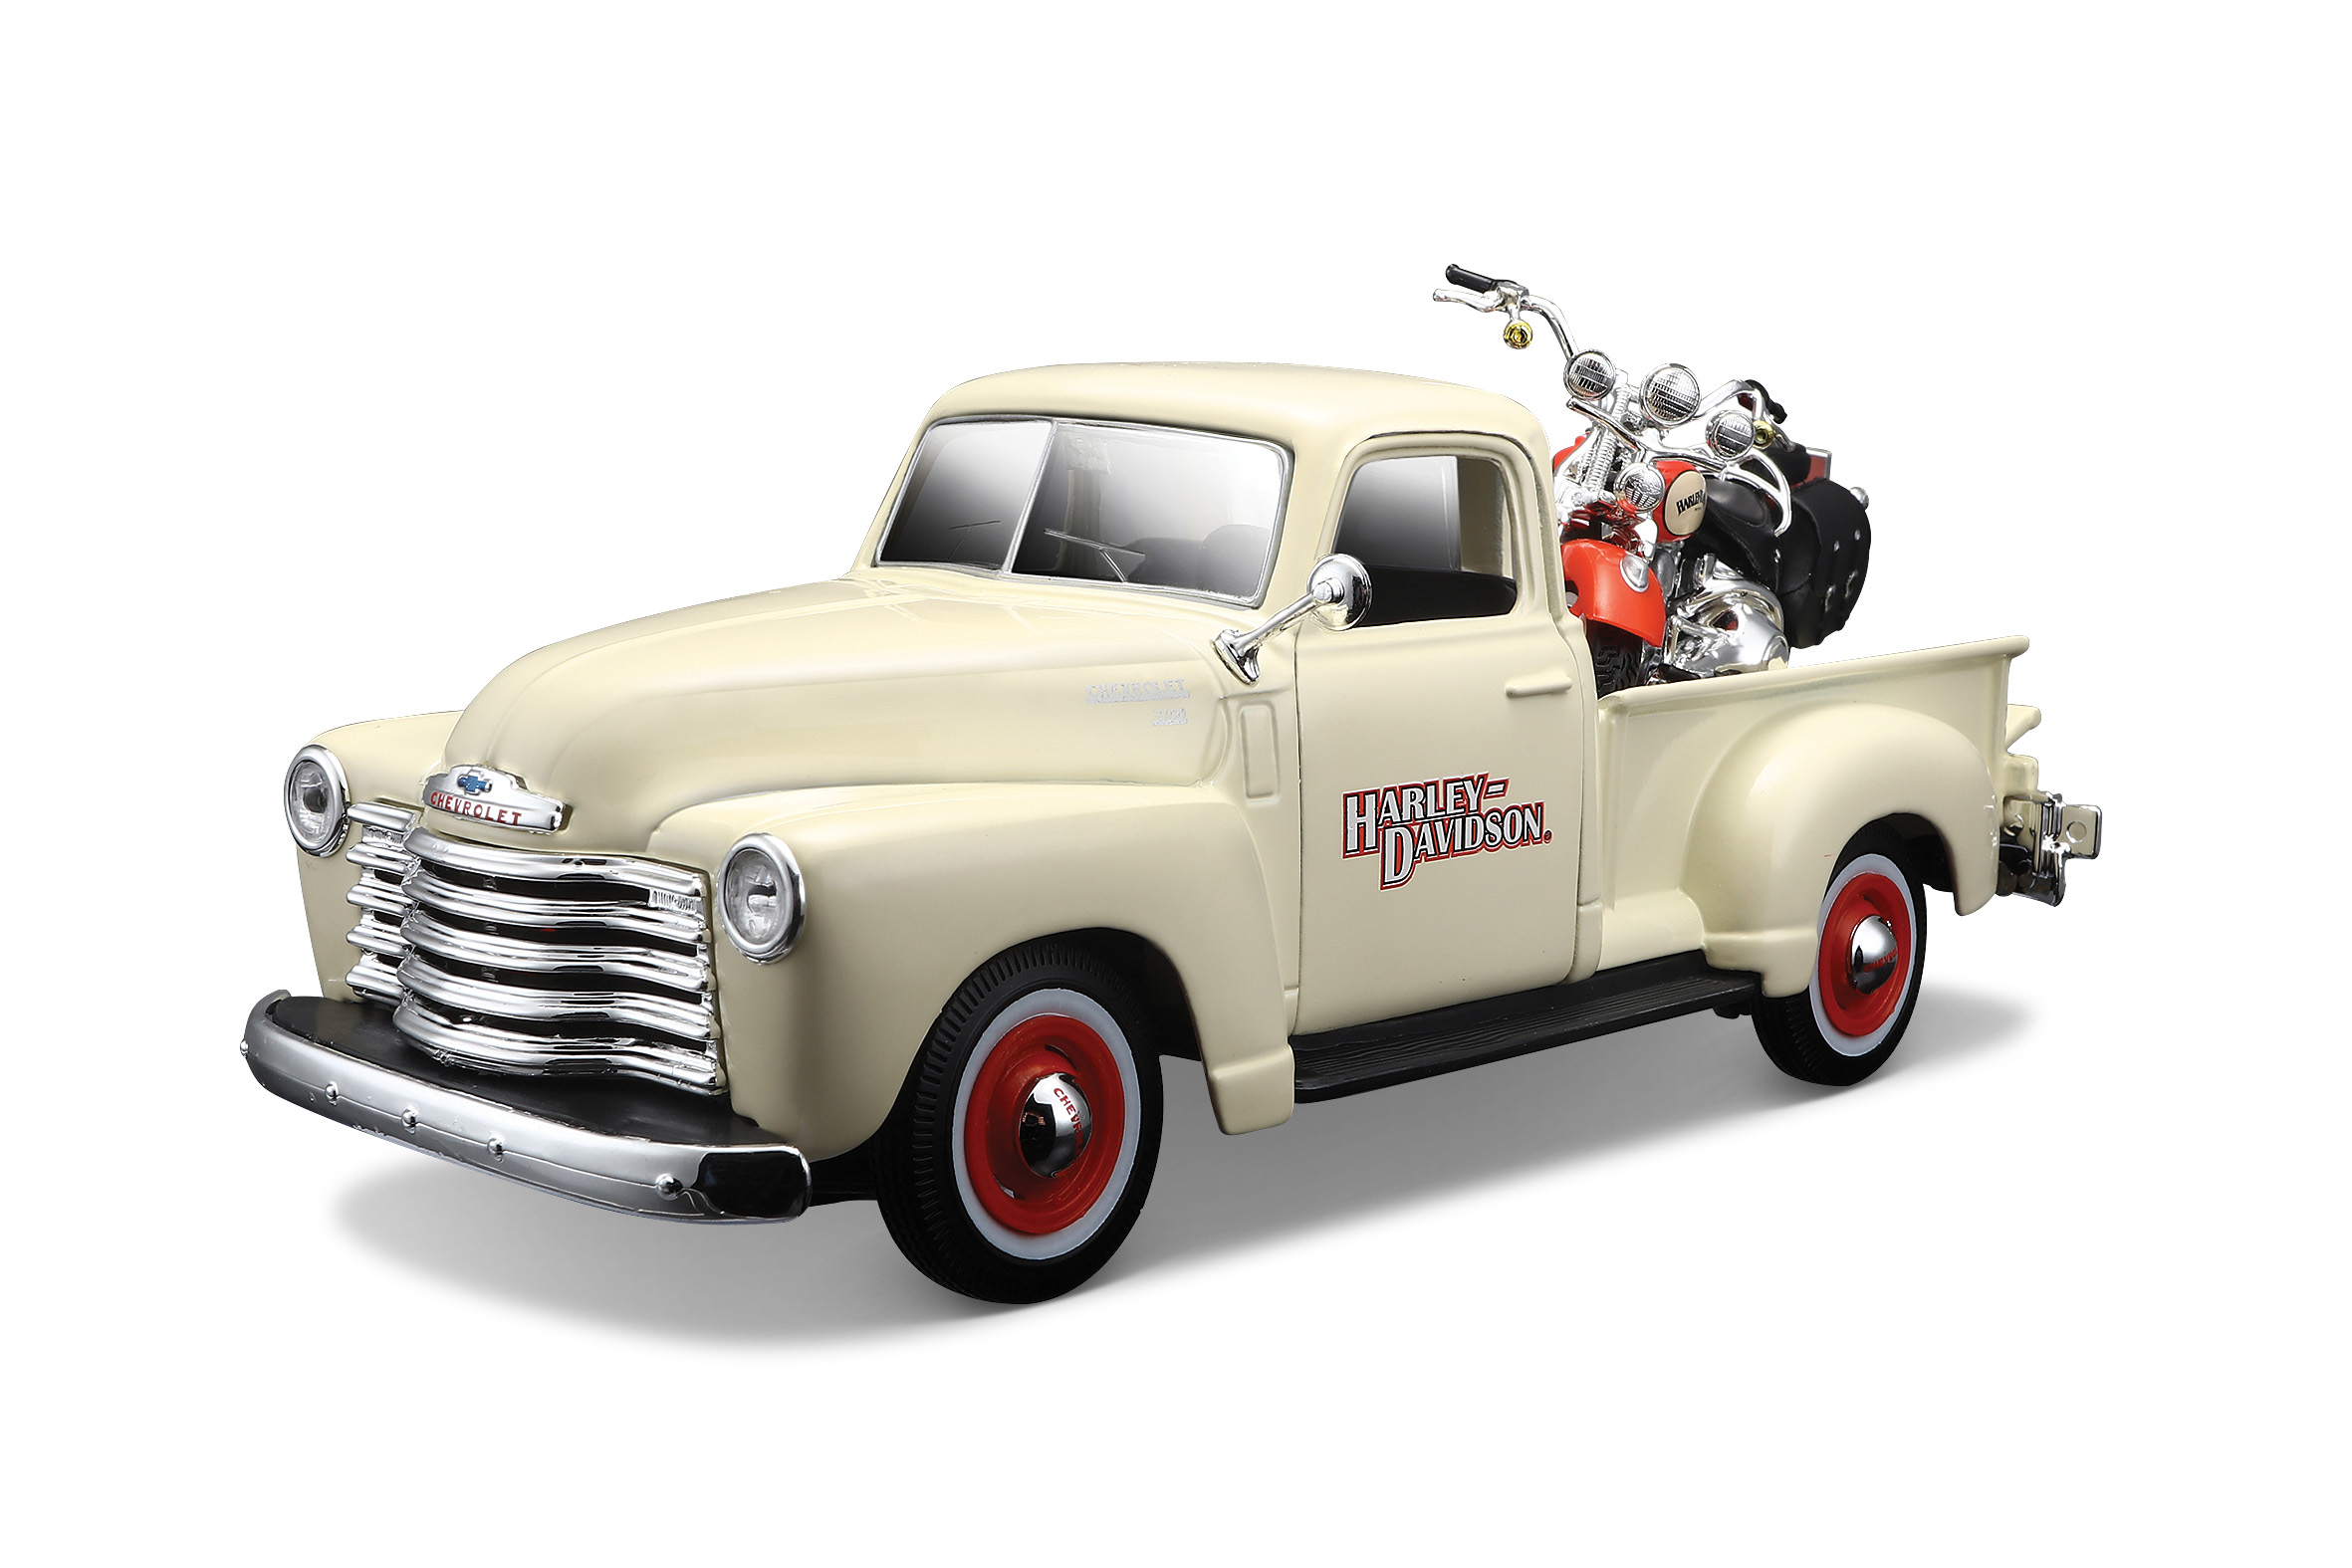 FLSTS Heritage Springer + 1950 Chevrolet 3100 Pickuo